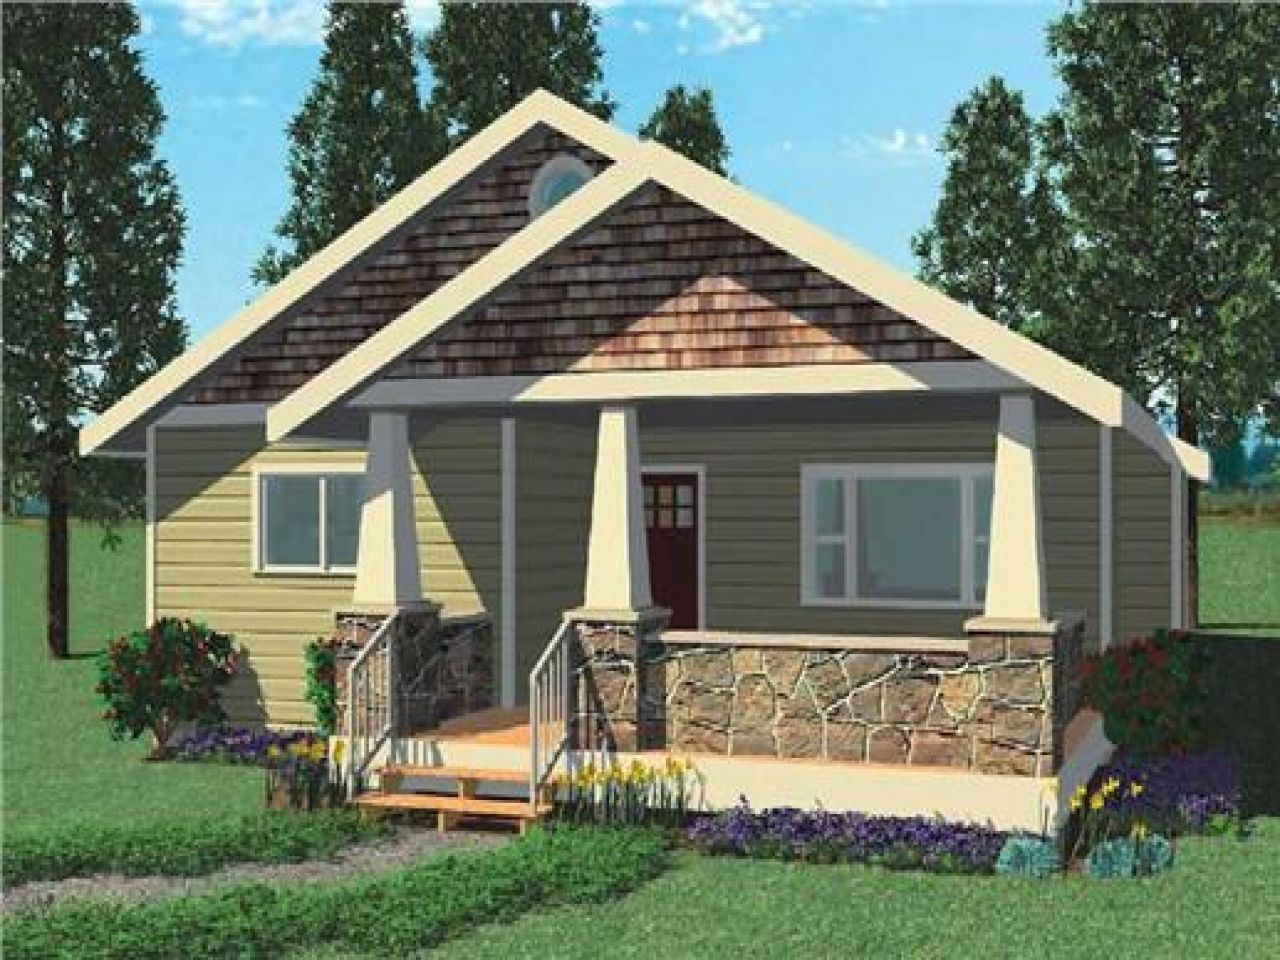 Bungalow House Plans Philippines Design One Story Floor California Bungalow House Plans Bungalow House Design Duplex House Design